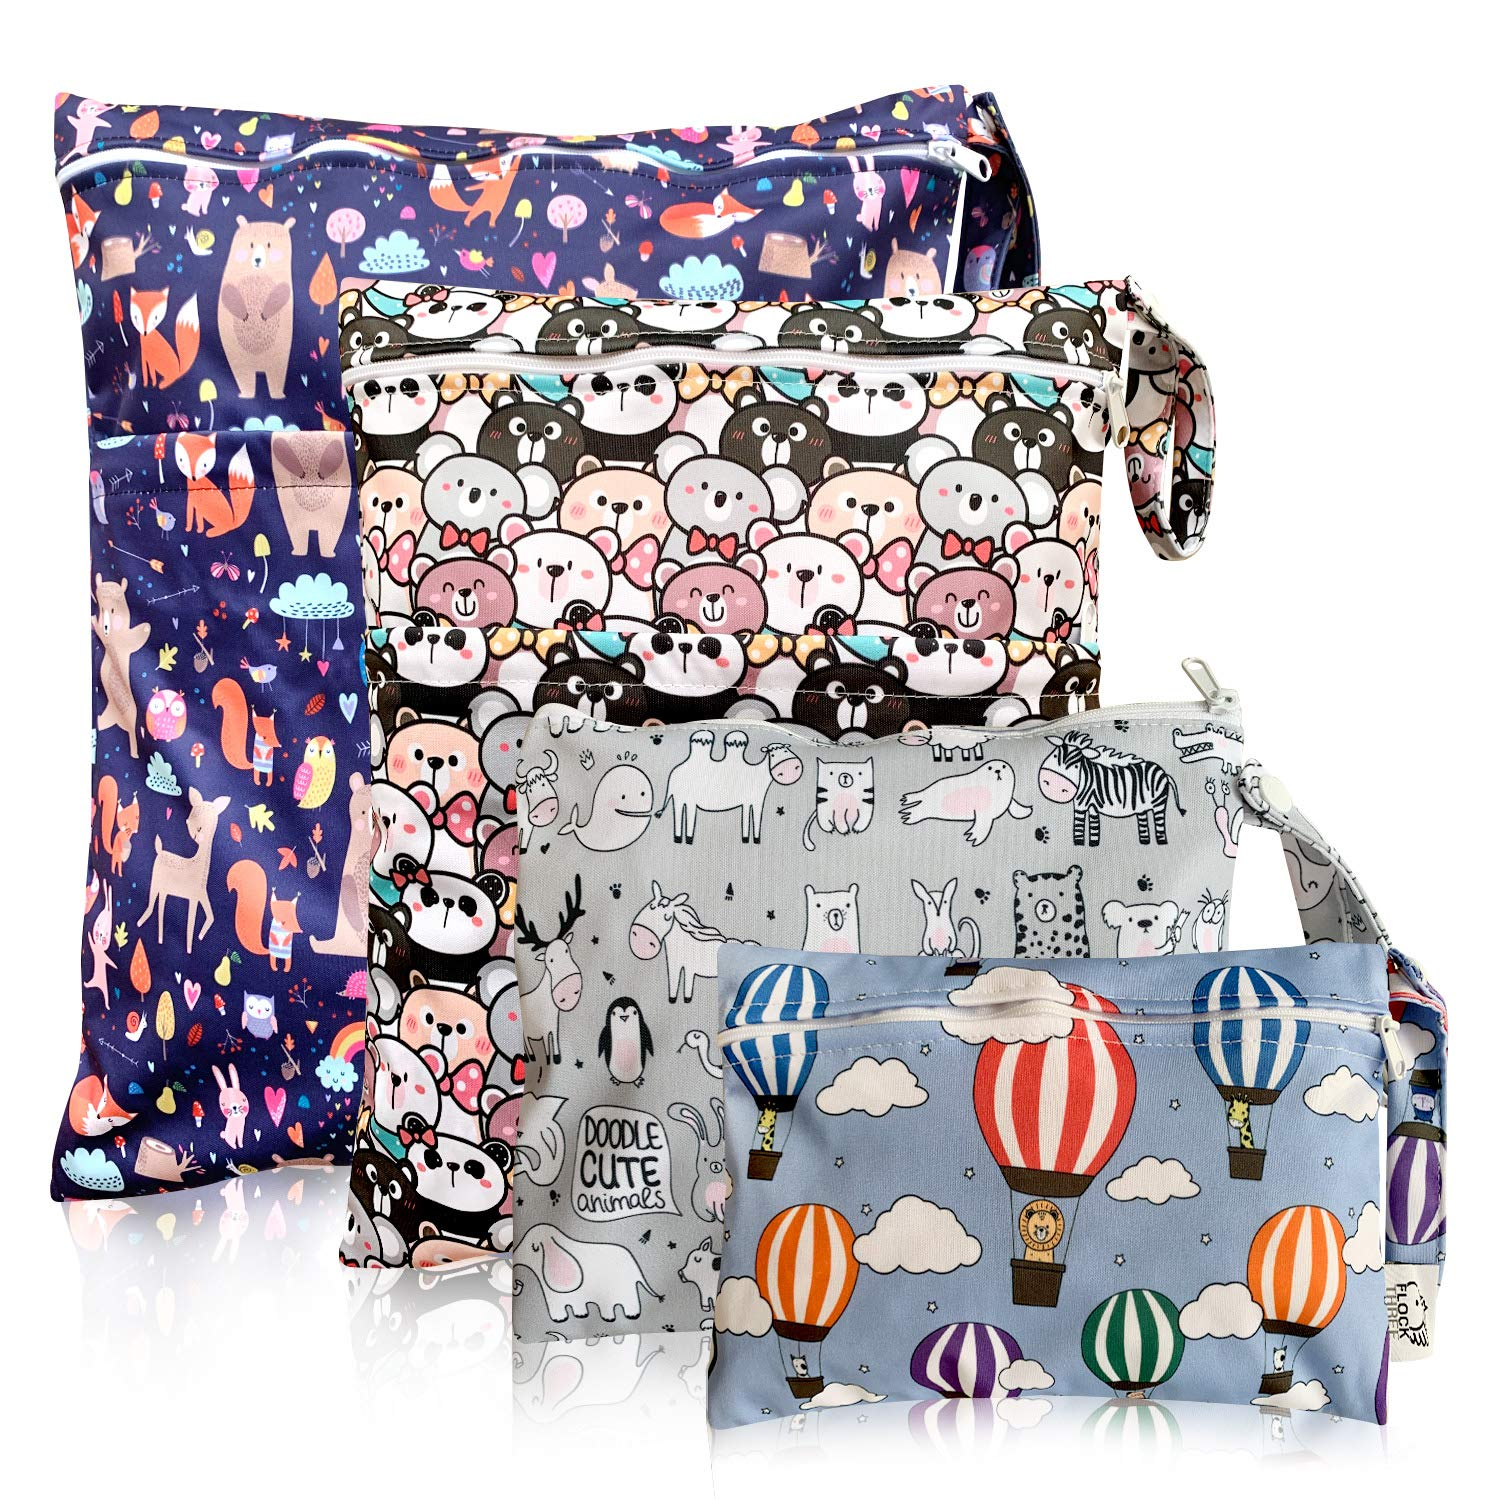 Diaper Cloth Waterproof Reusable Wet Bags with Zippered Snap Handing for Travel Pool Beach Daycare Toddler Soiled Yoga Gym Bag Swimwear Bathing Suit or Wet Clothes,4 pcs, Fantasy Wet Dry Bag